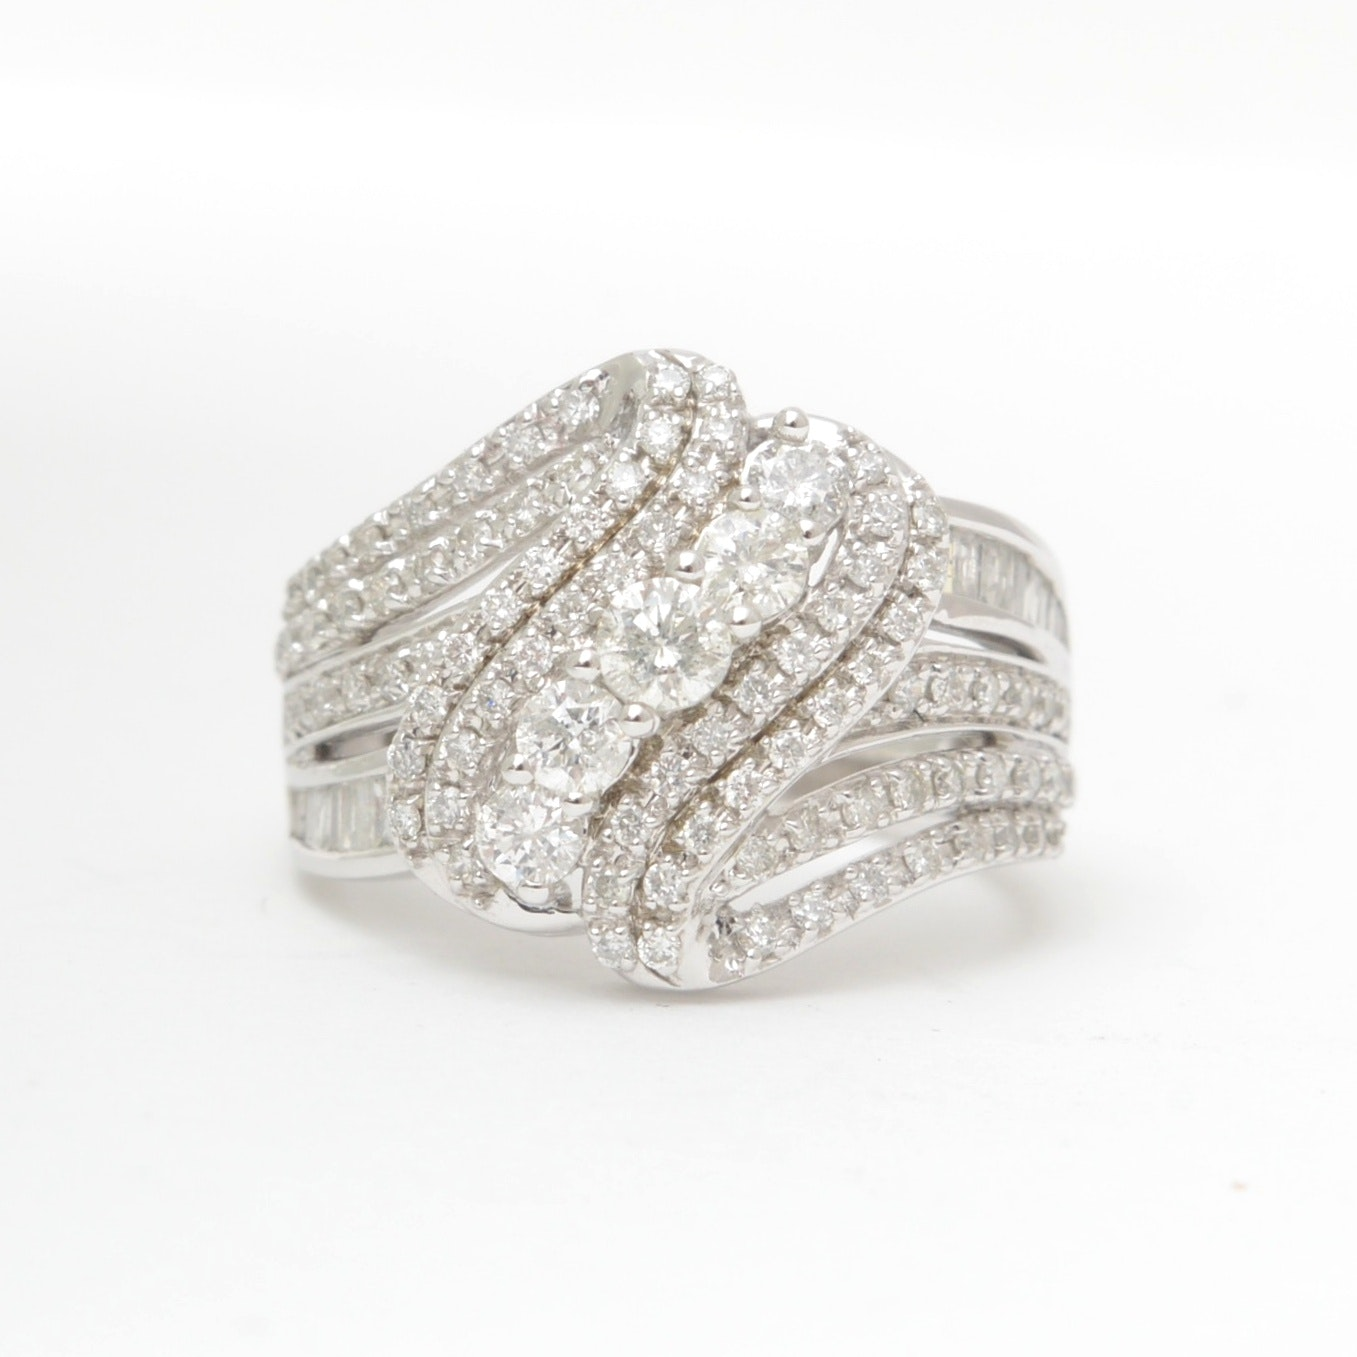 10K White Gold and Diamond Cocktail Ring